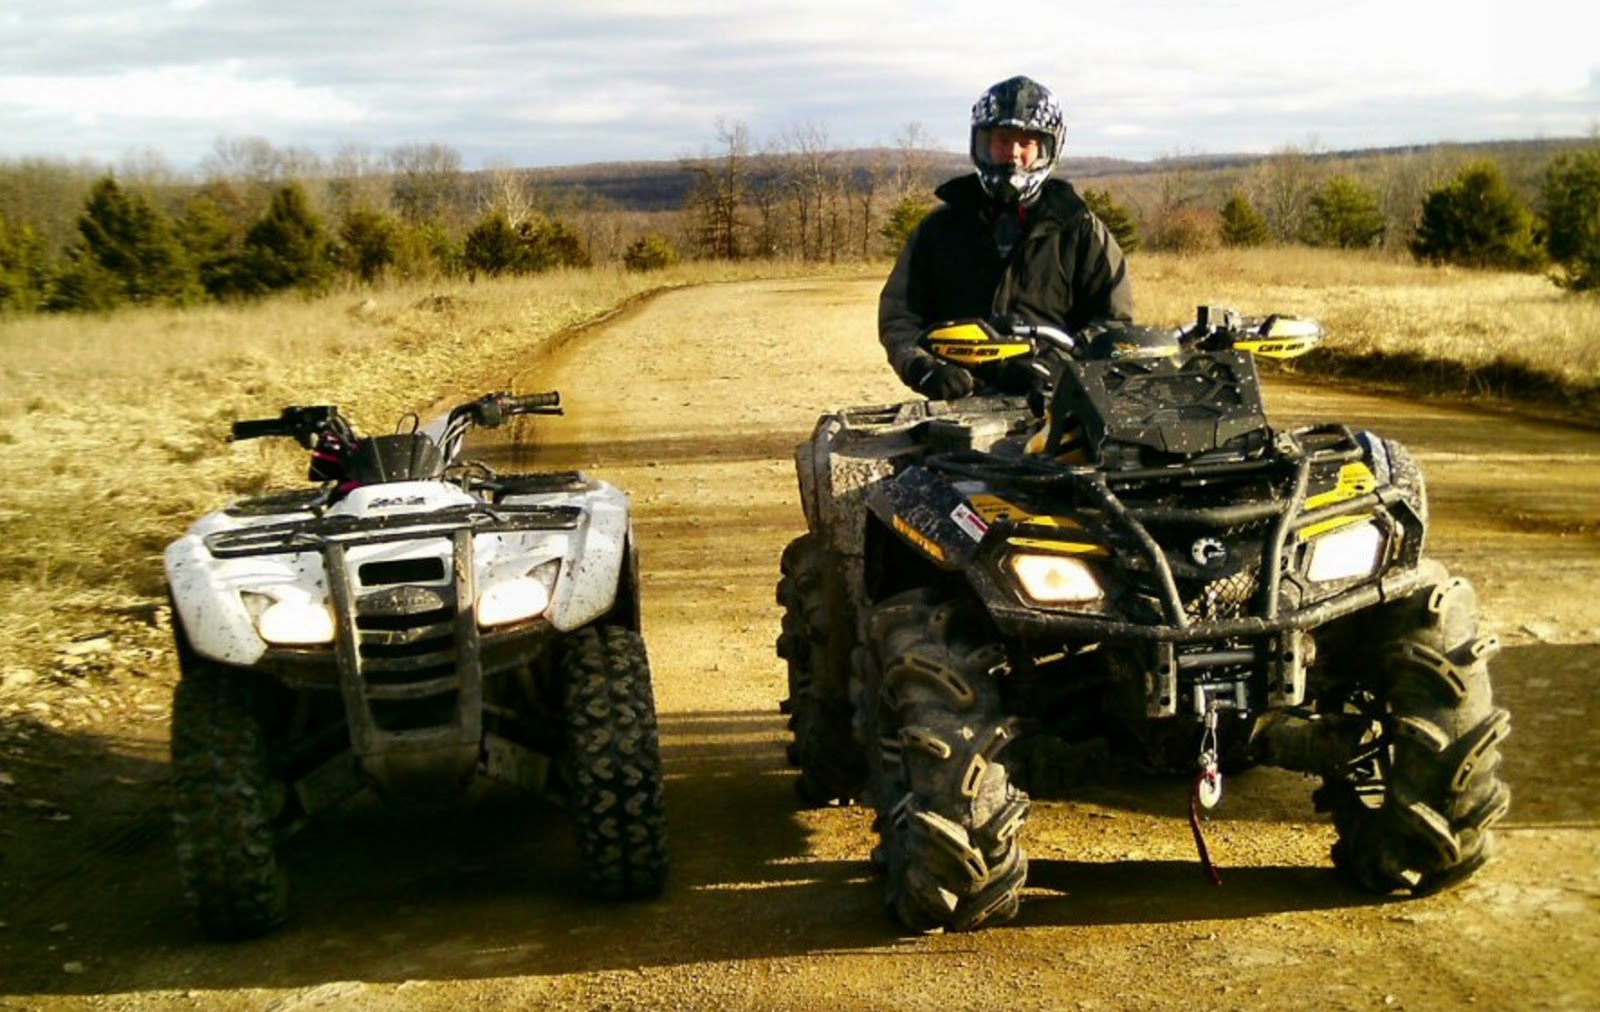 ATV Riding - dcnr.pa.gov